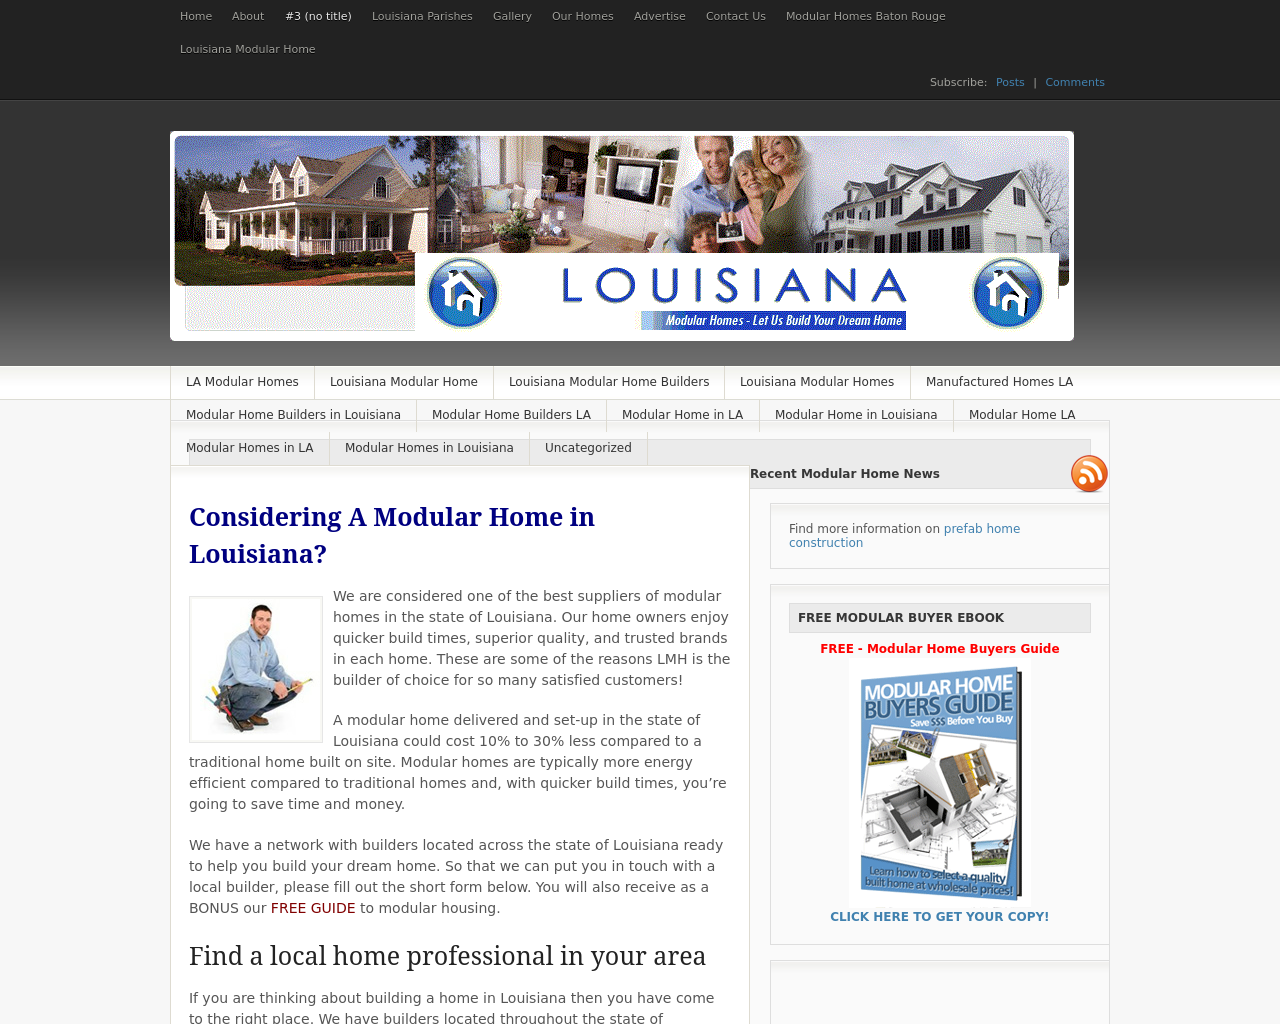 Louisiana-Modular-Homes-Advertising-Reviews-Pricing